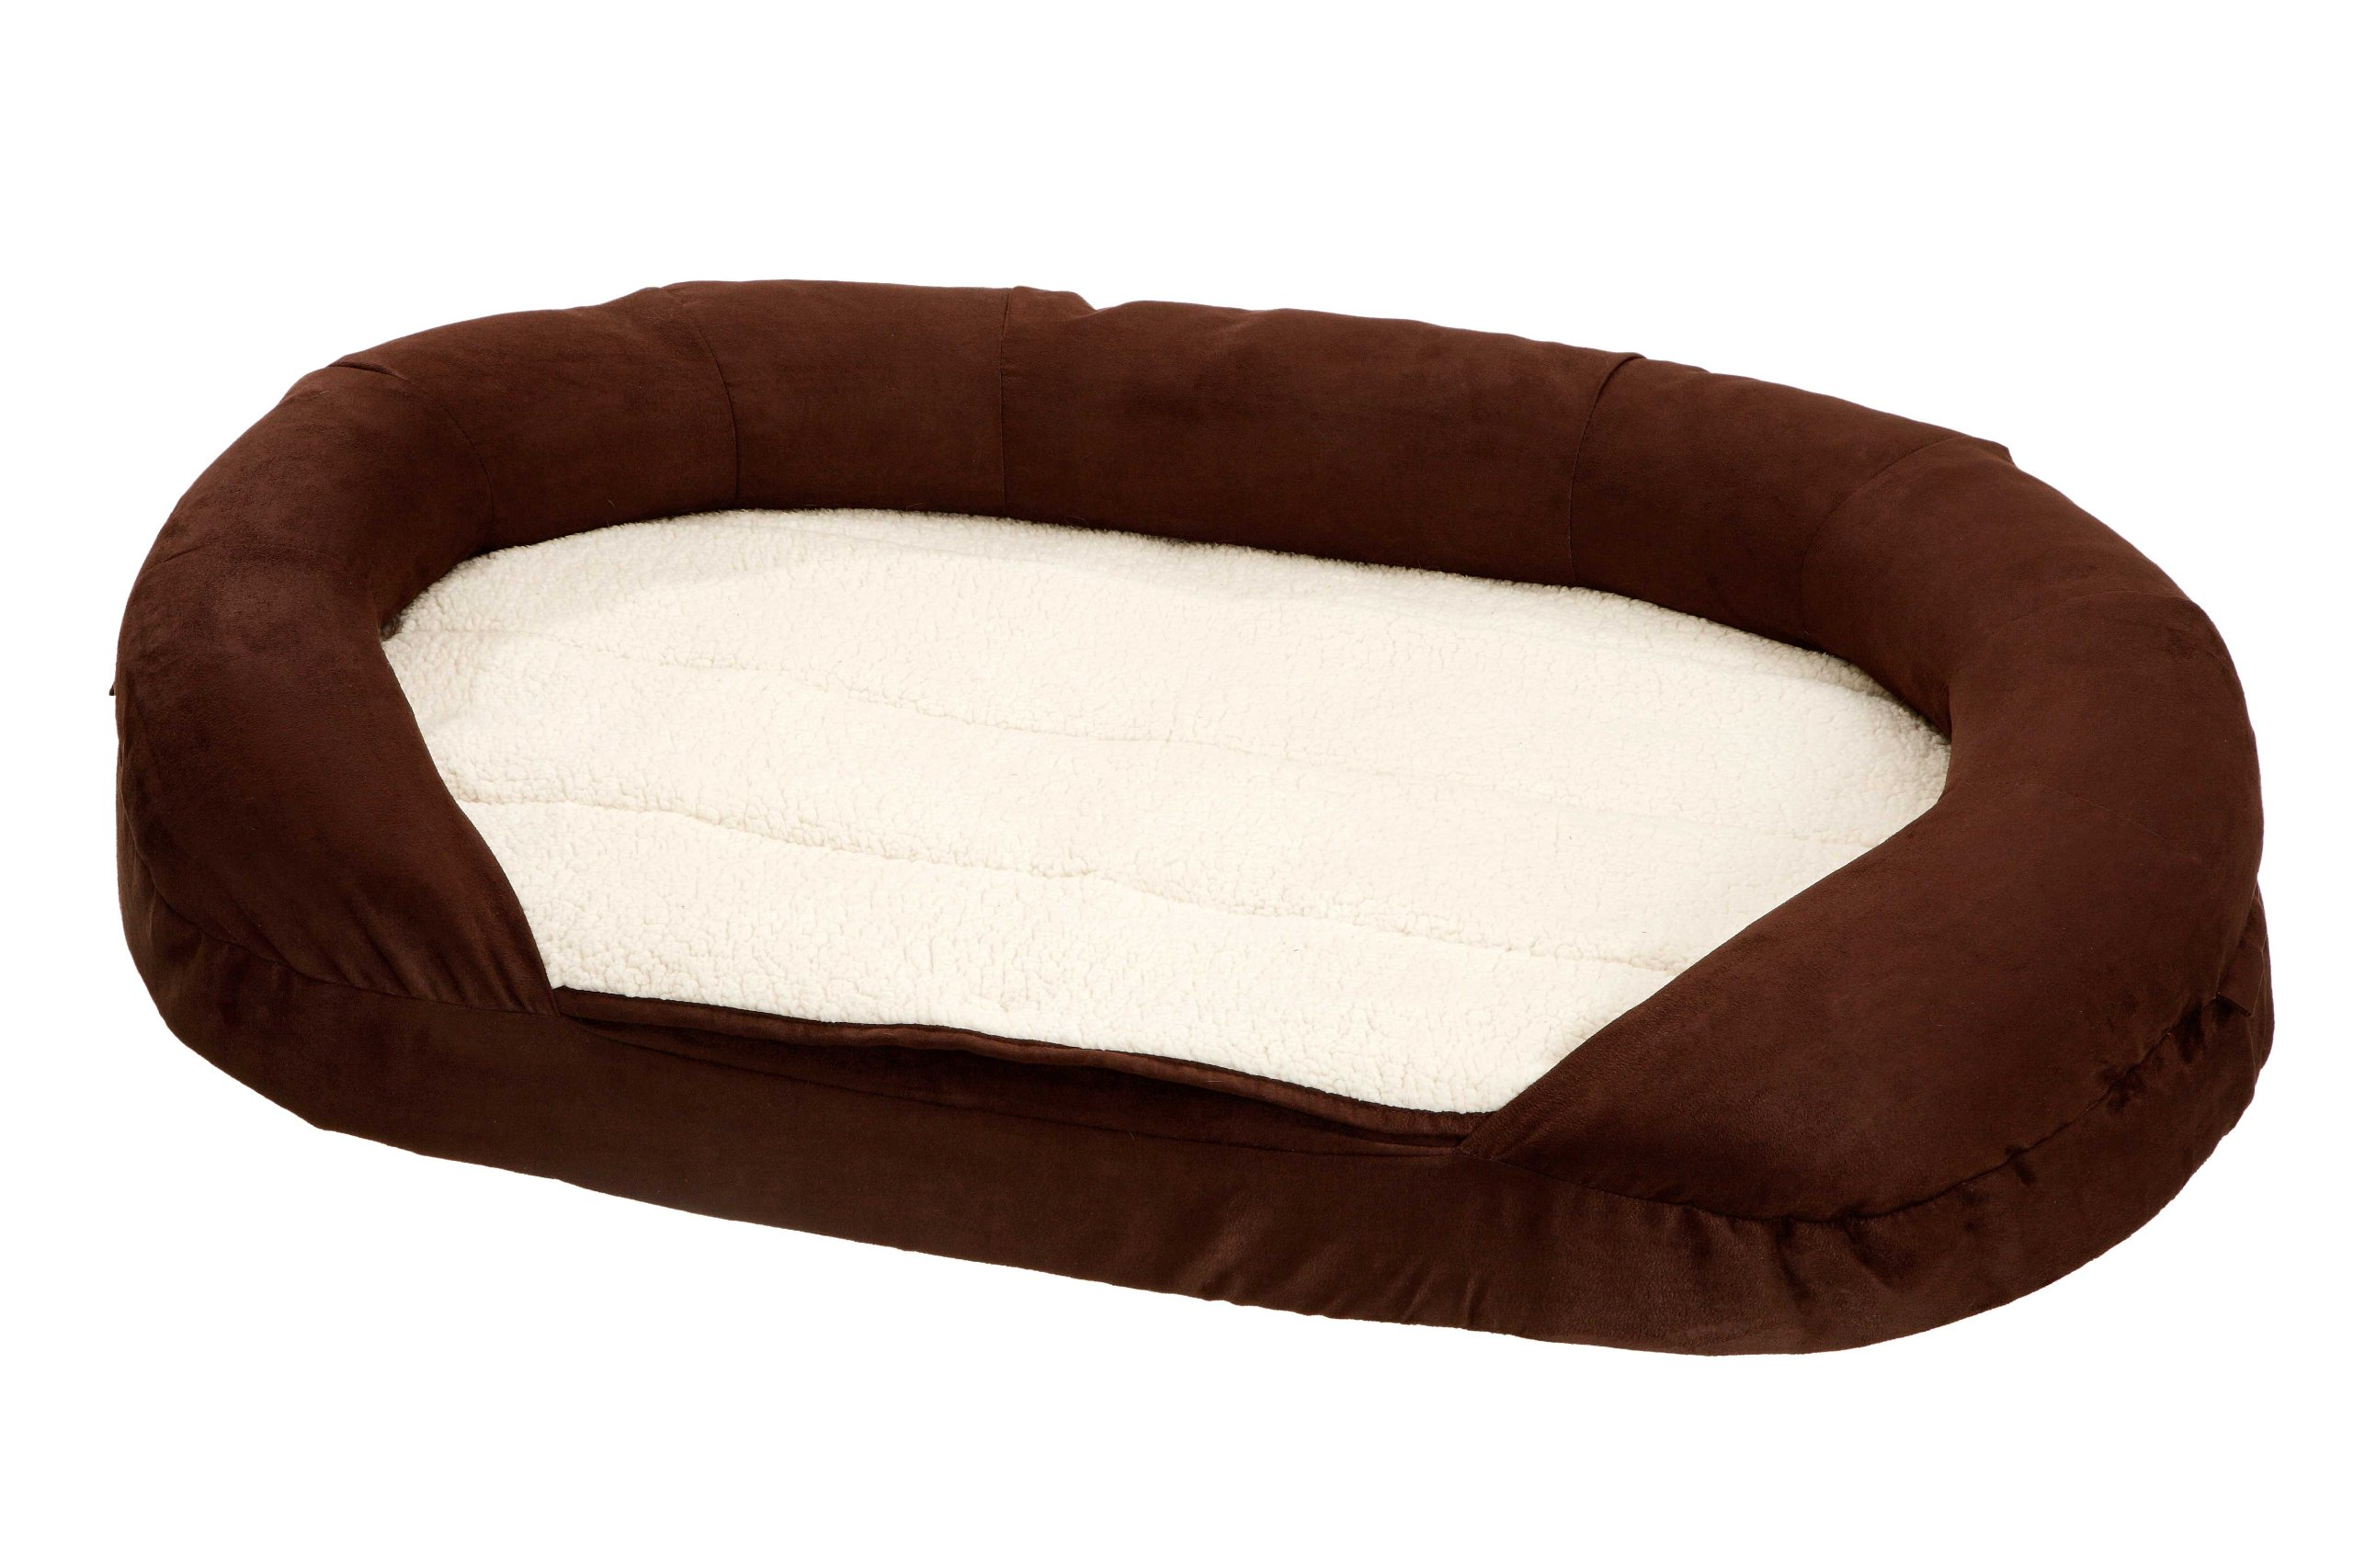 Karlie Ortho Bed Oval Lying Matress, 120 x 72 x 24 cm, Brown